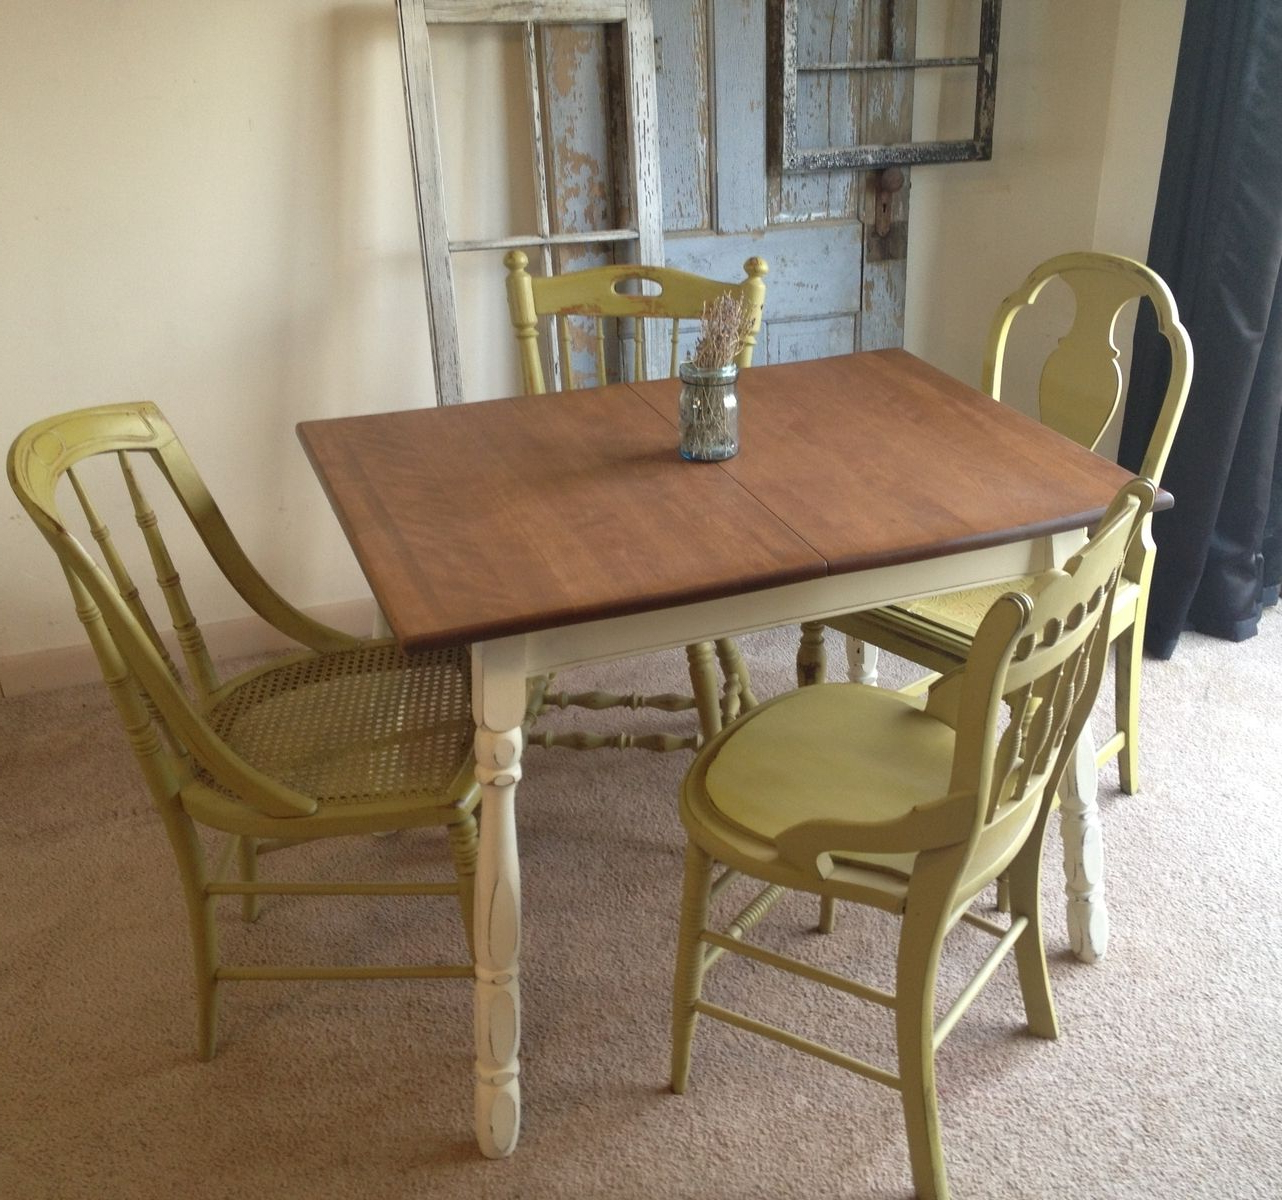 Vintage Cream Frame And Espresso Bamboo Dining Tables With Well Liked Vintage Small Kitchen Table: Like The Cream Painted Legs (View 5 of 30)